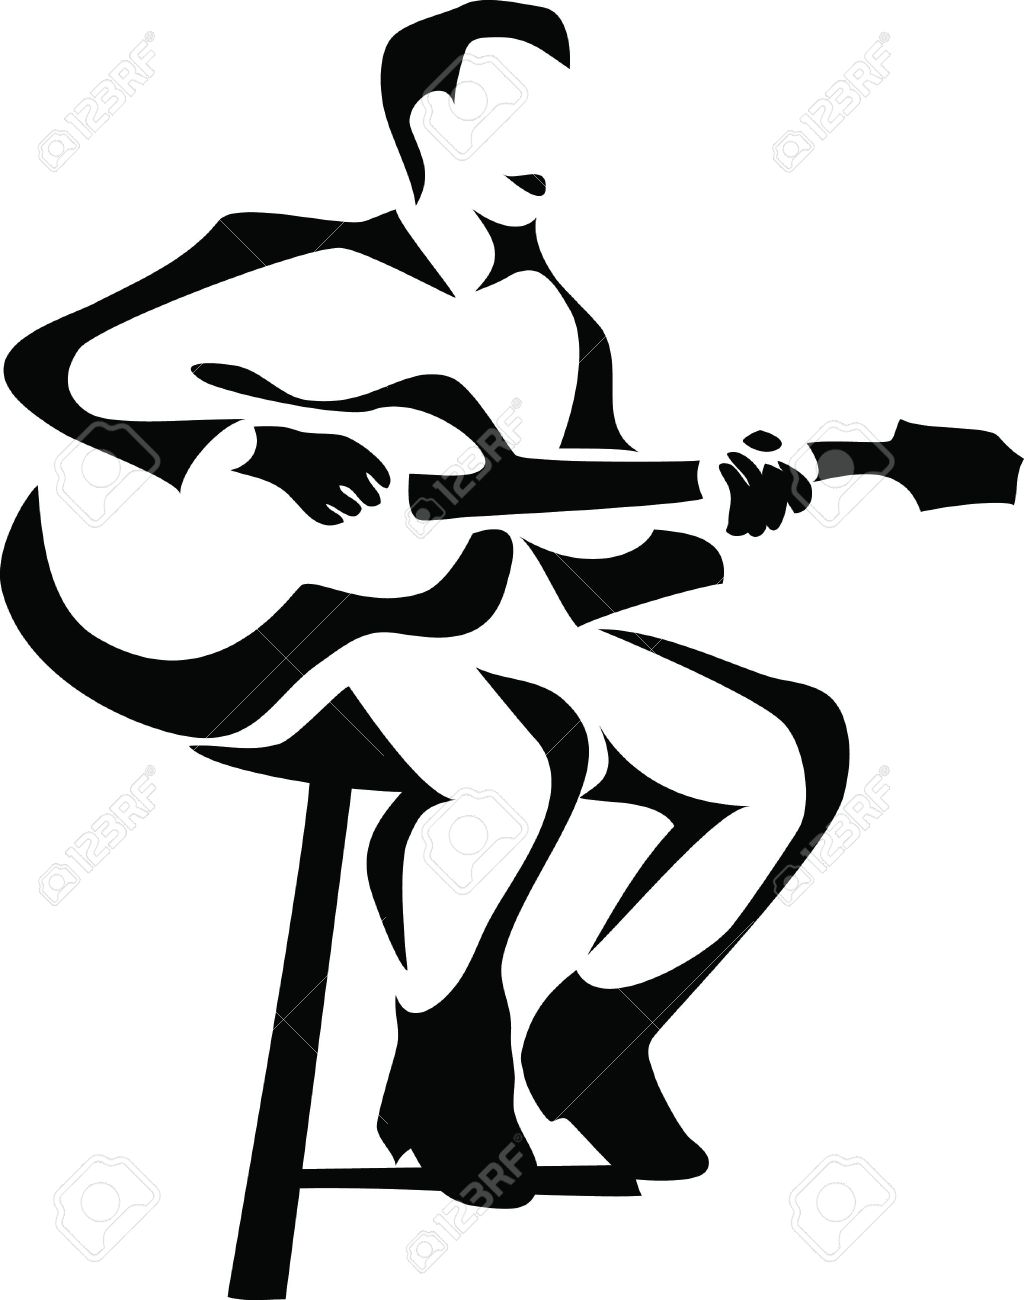 guitar player royalty free cliparts vectors and stock illustration rh 123rf com guitar player clipart free guitar player clipart free